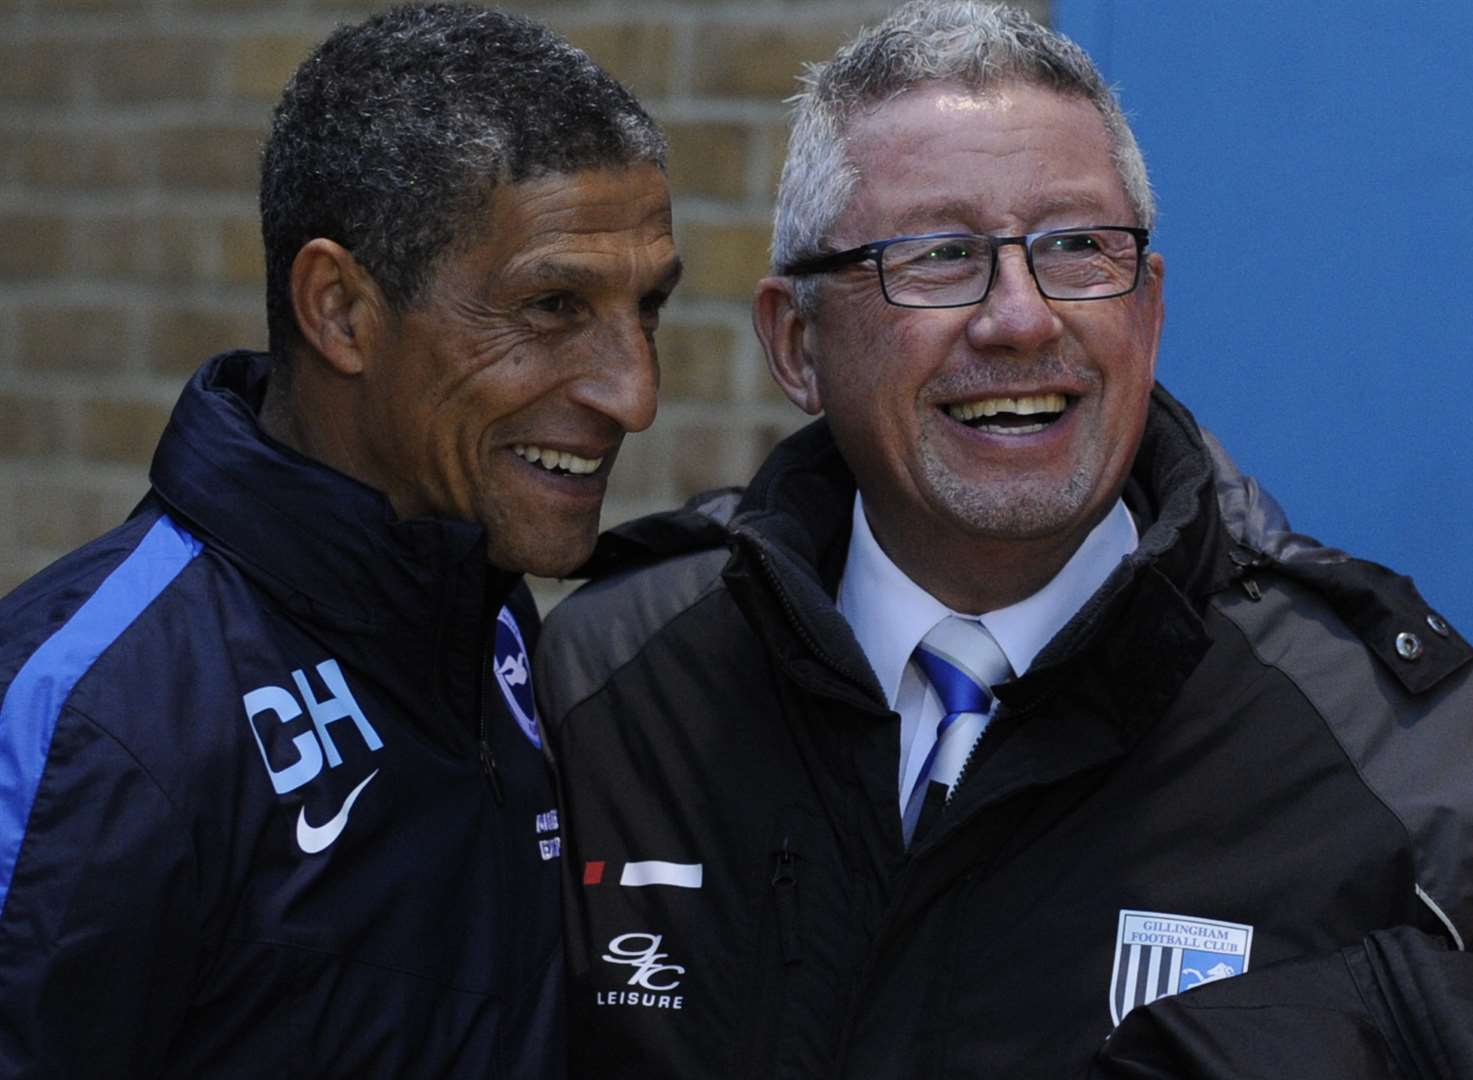 Hughton's the man, says Gills boss